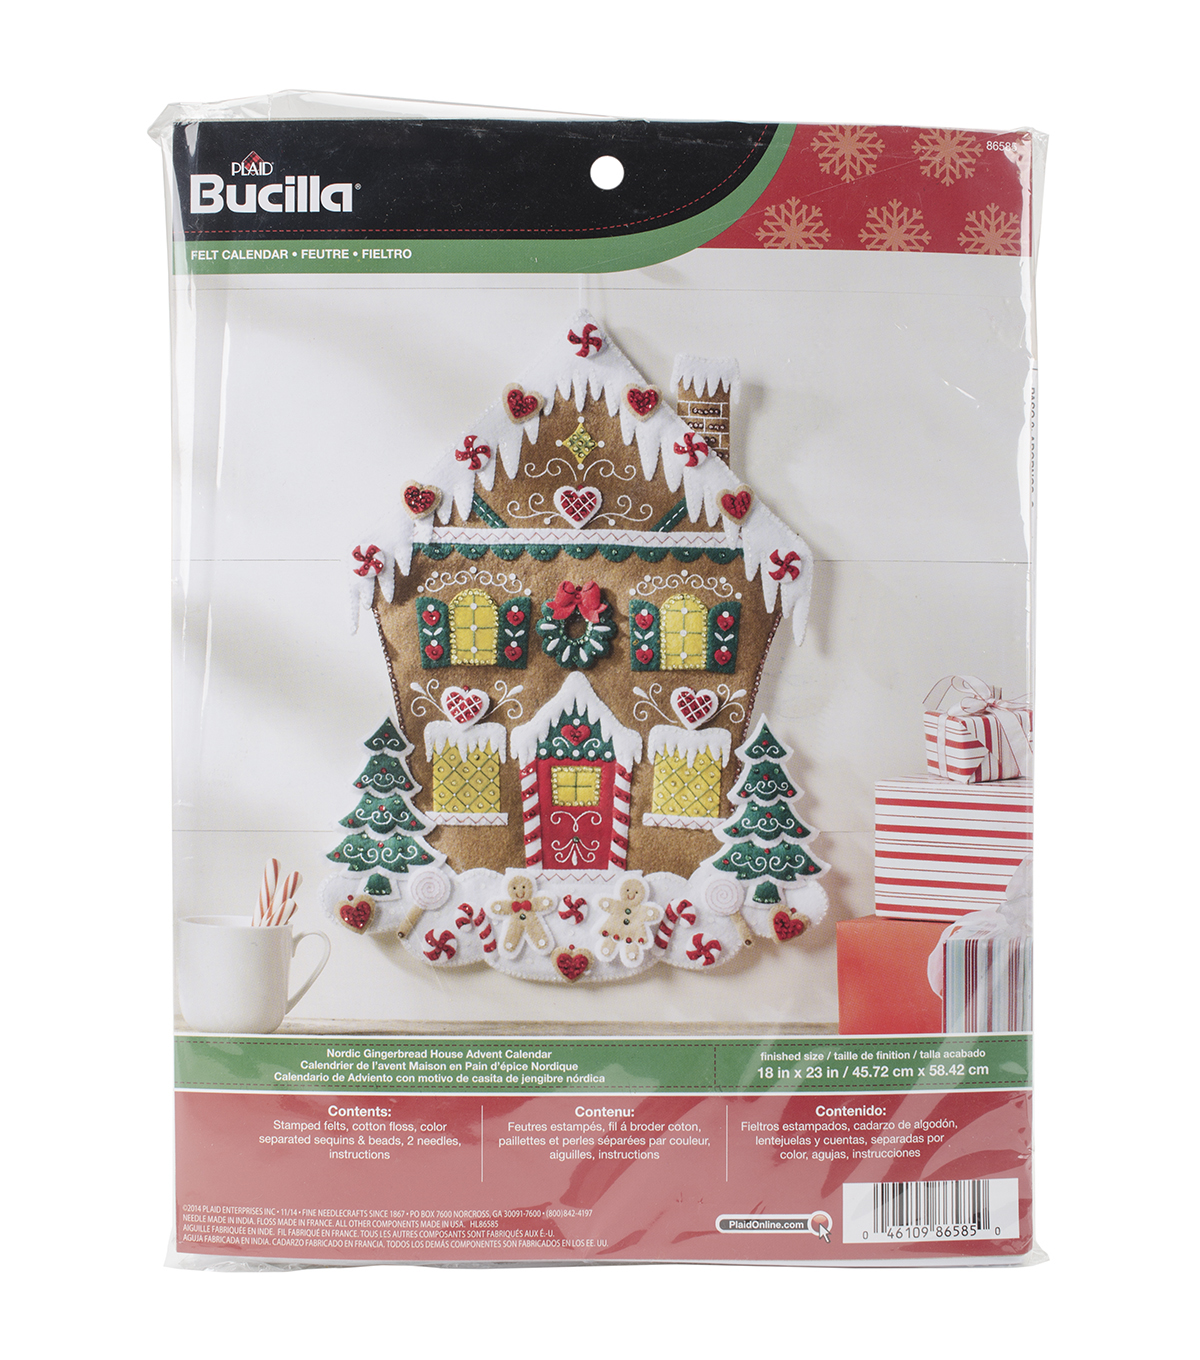 Bucilla Nordic Gingerbread House Felt Applique Kit